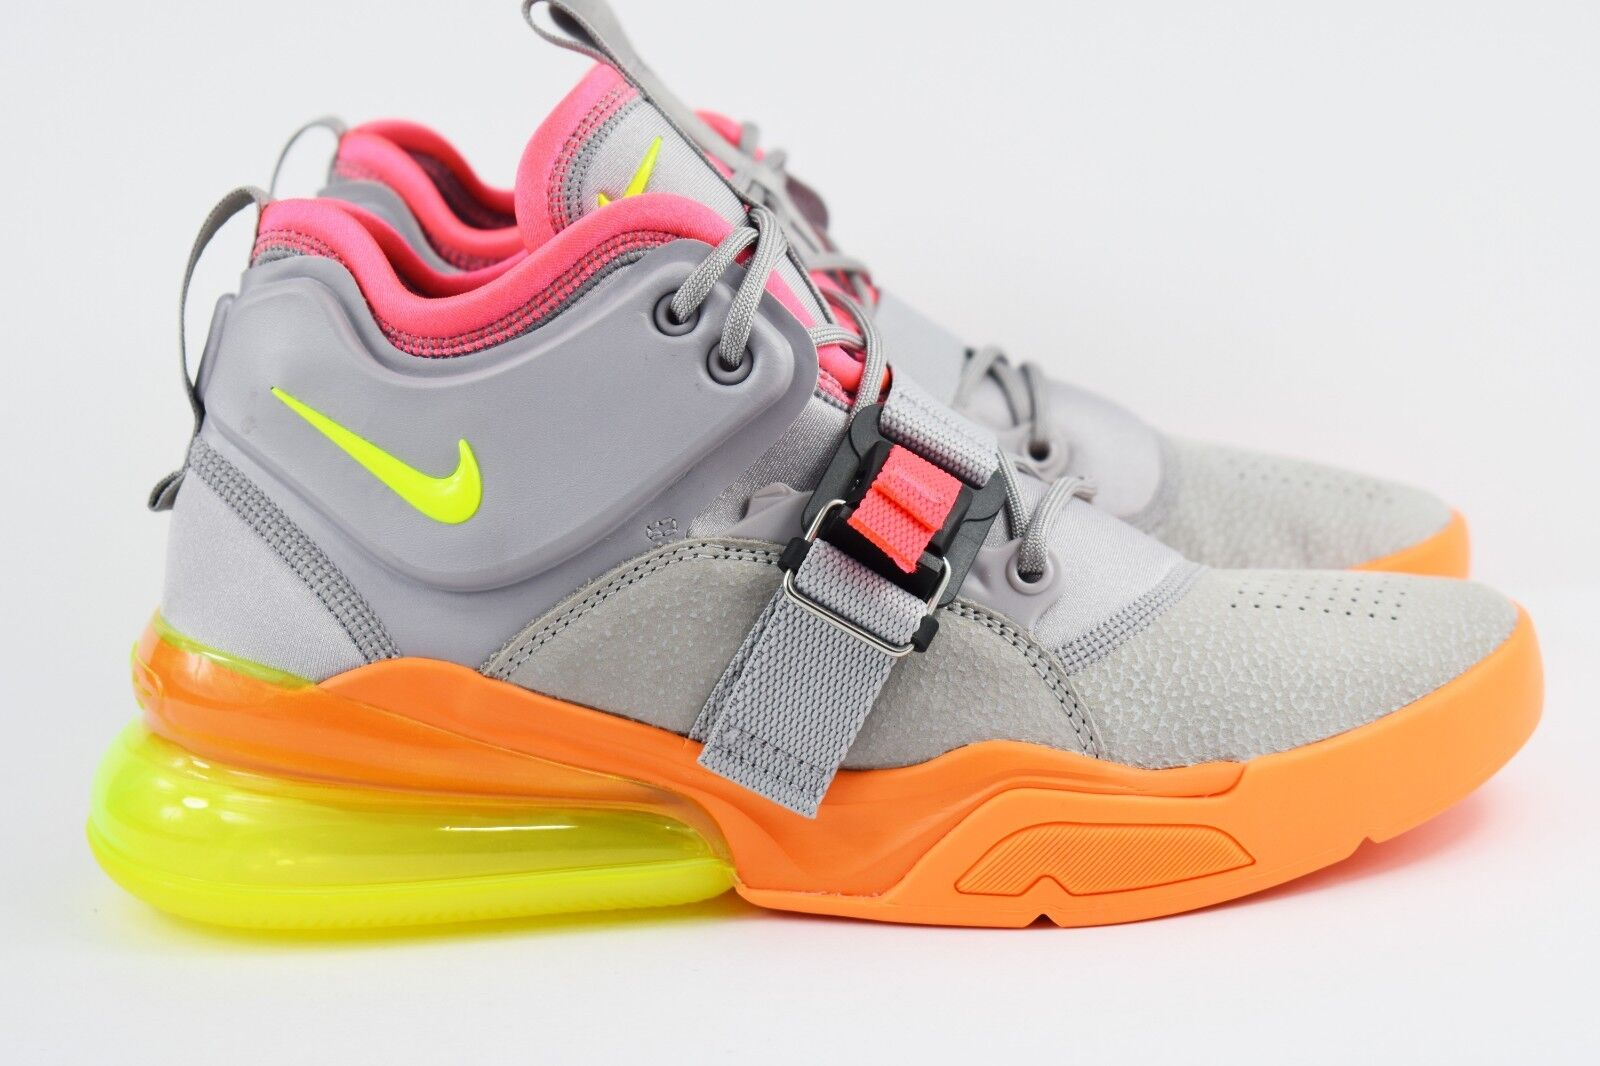 separation shoes 78165 e9e25 Air Nike Force 270 Volt 007 AH6772 Grey Atmosphere Sherbert ...